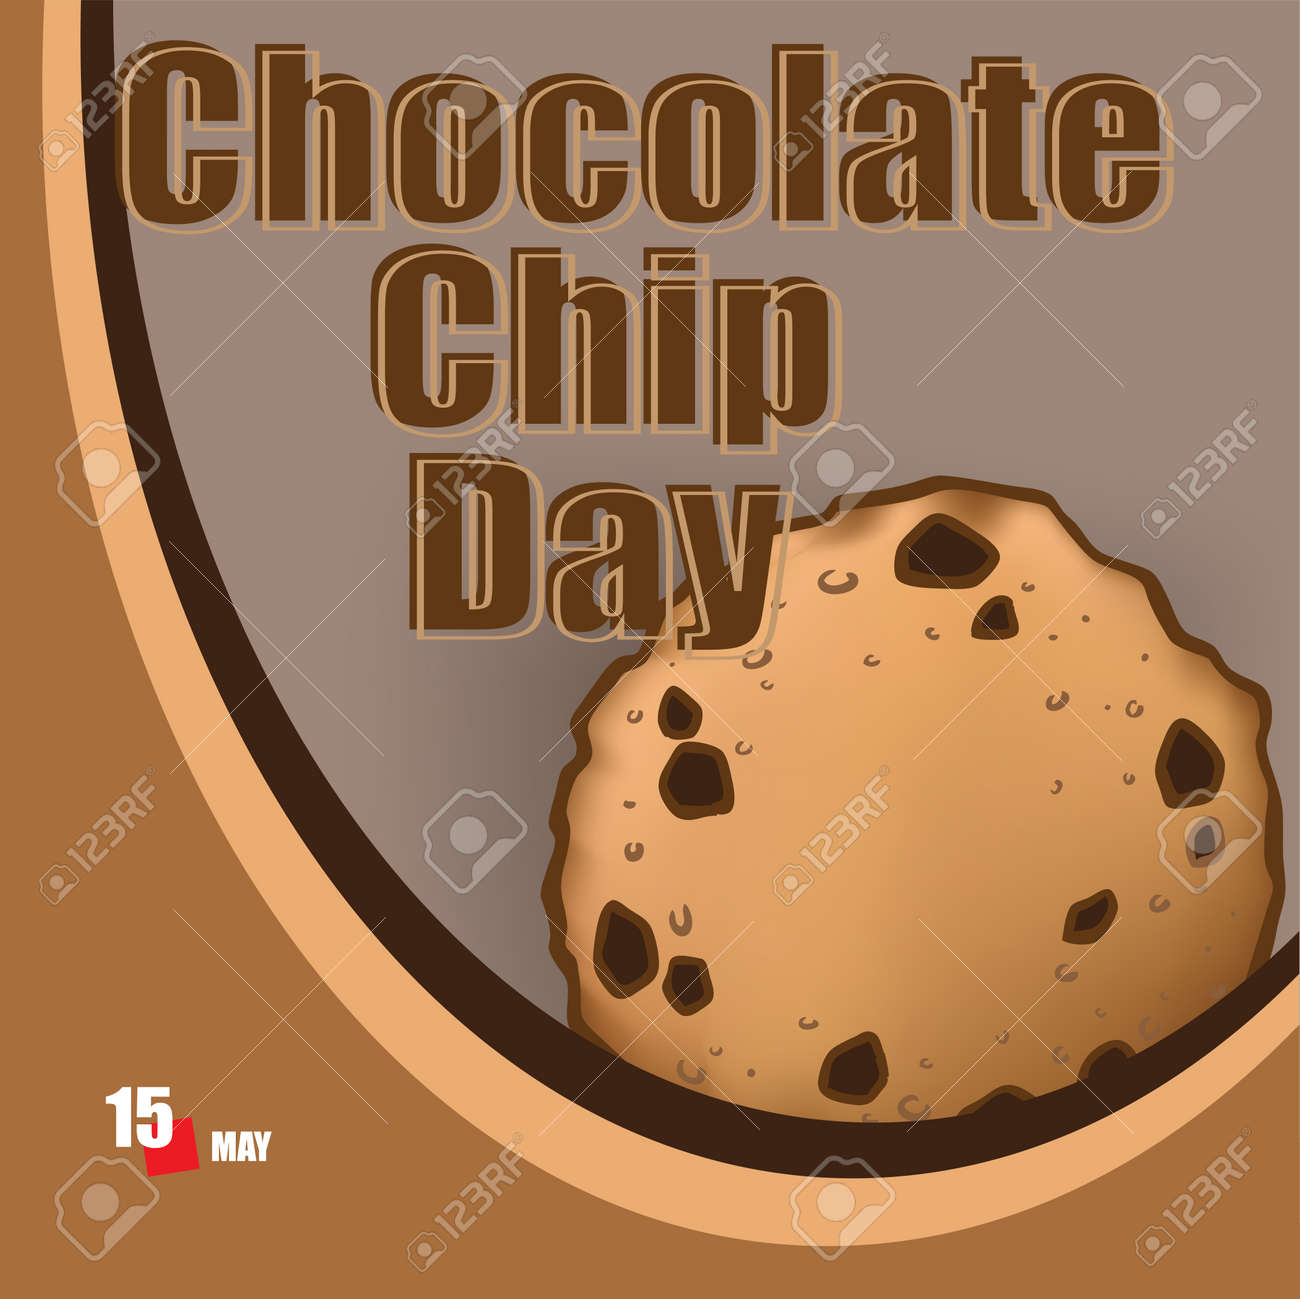 A festive event celebrated in May - Chocolate Chip Day - 168987784